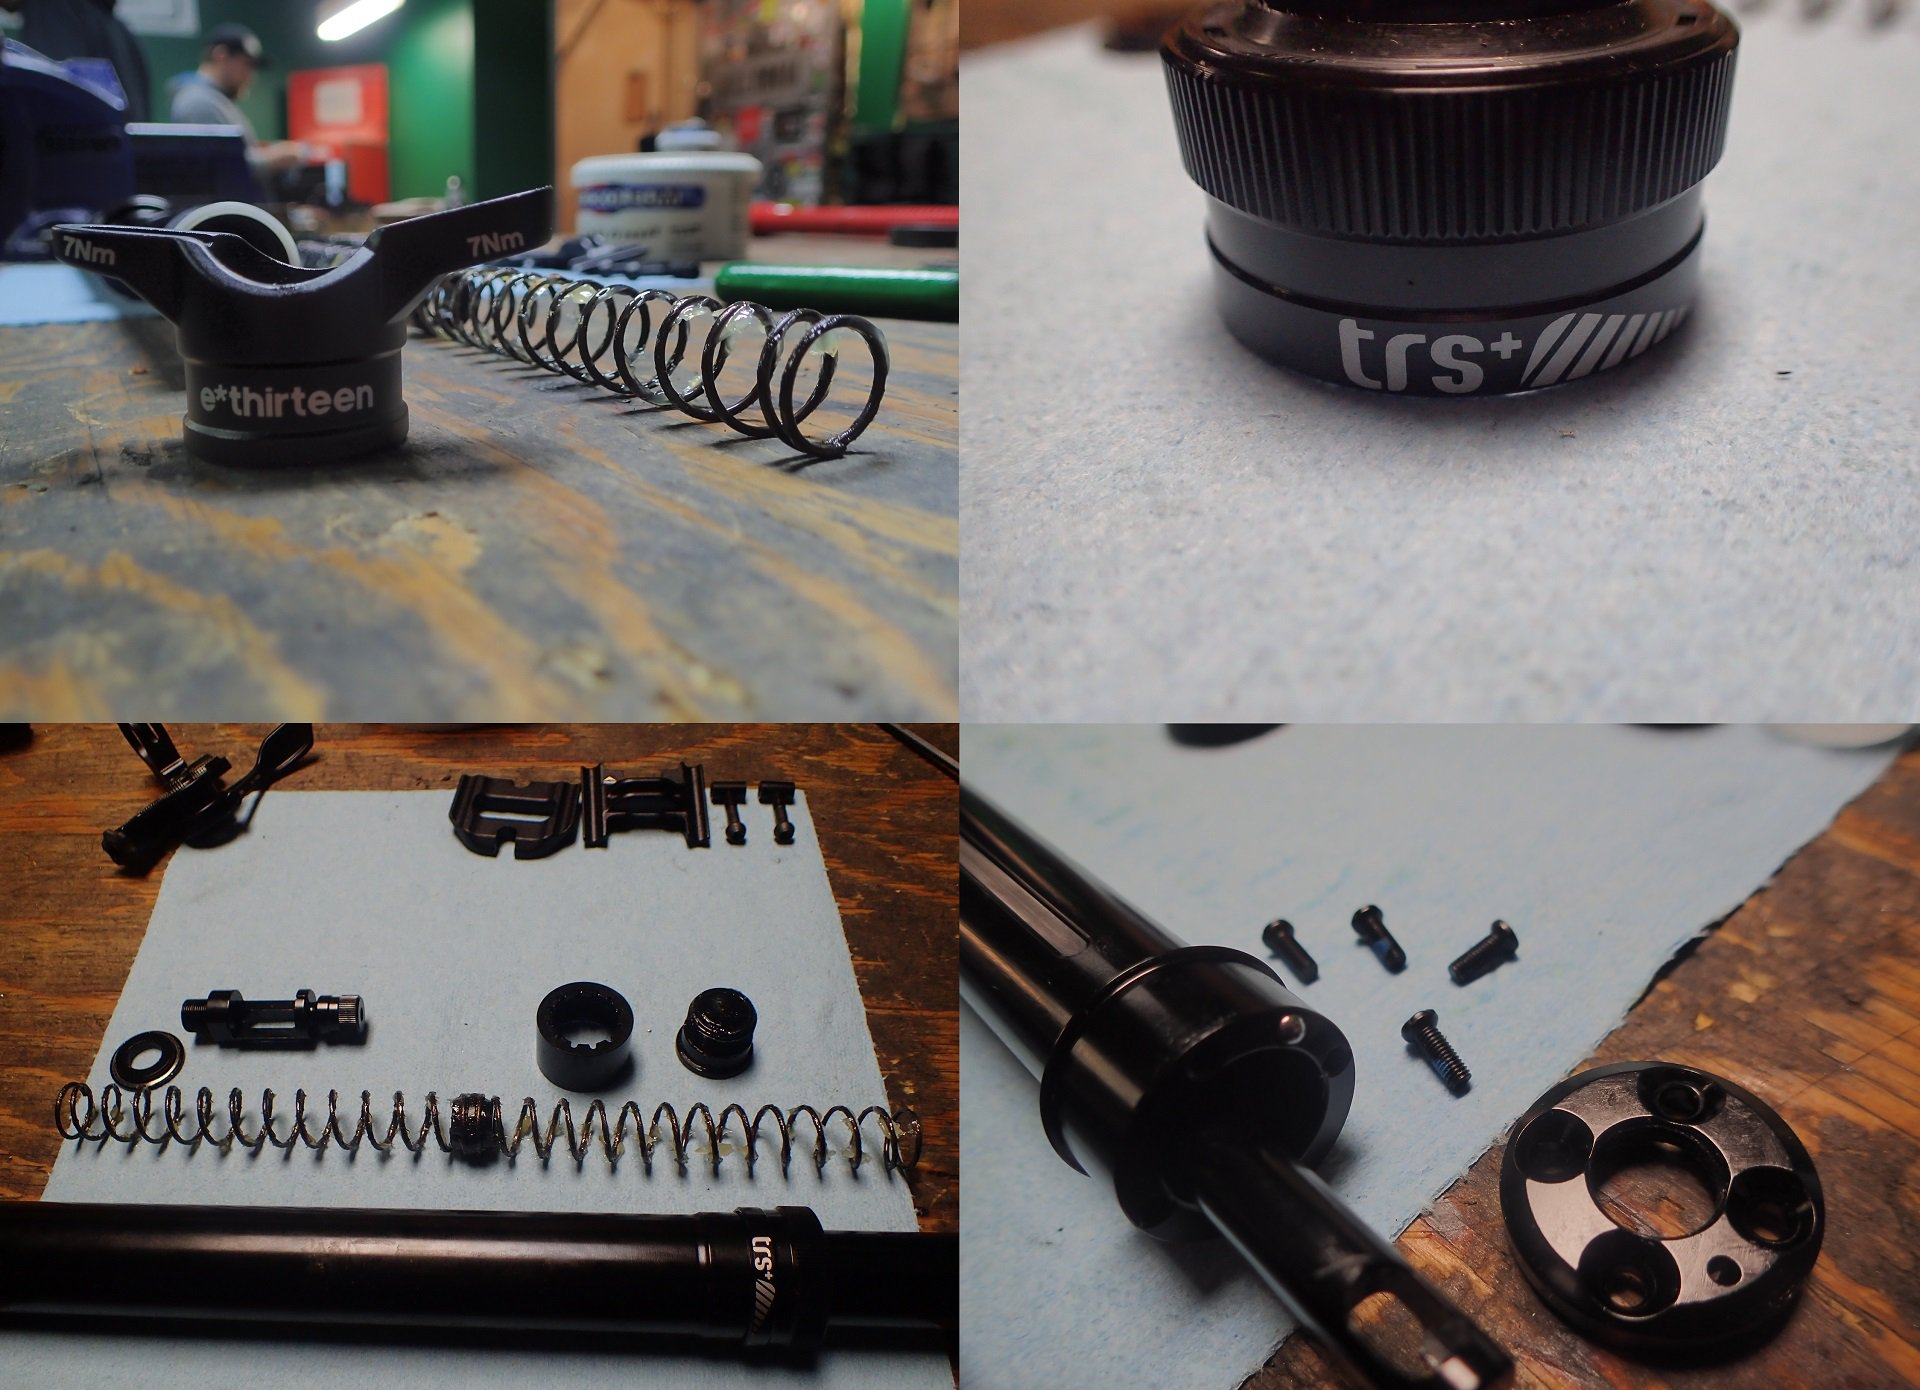 E13 TRS+ Dropper Post Teardown Bikeroom